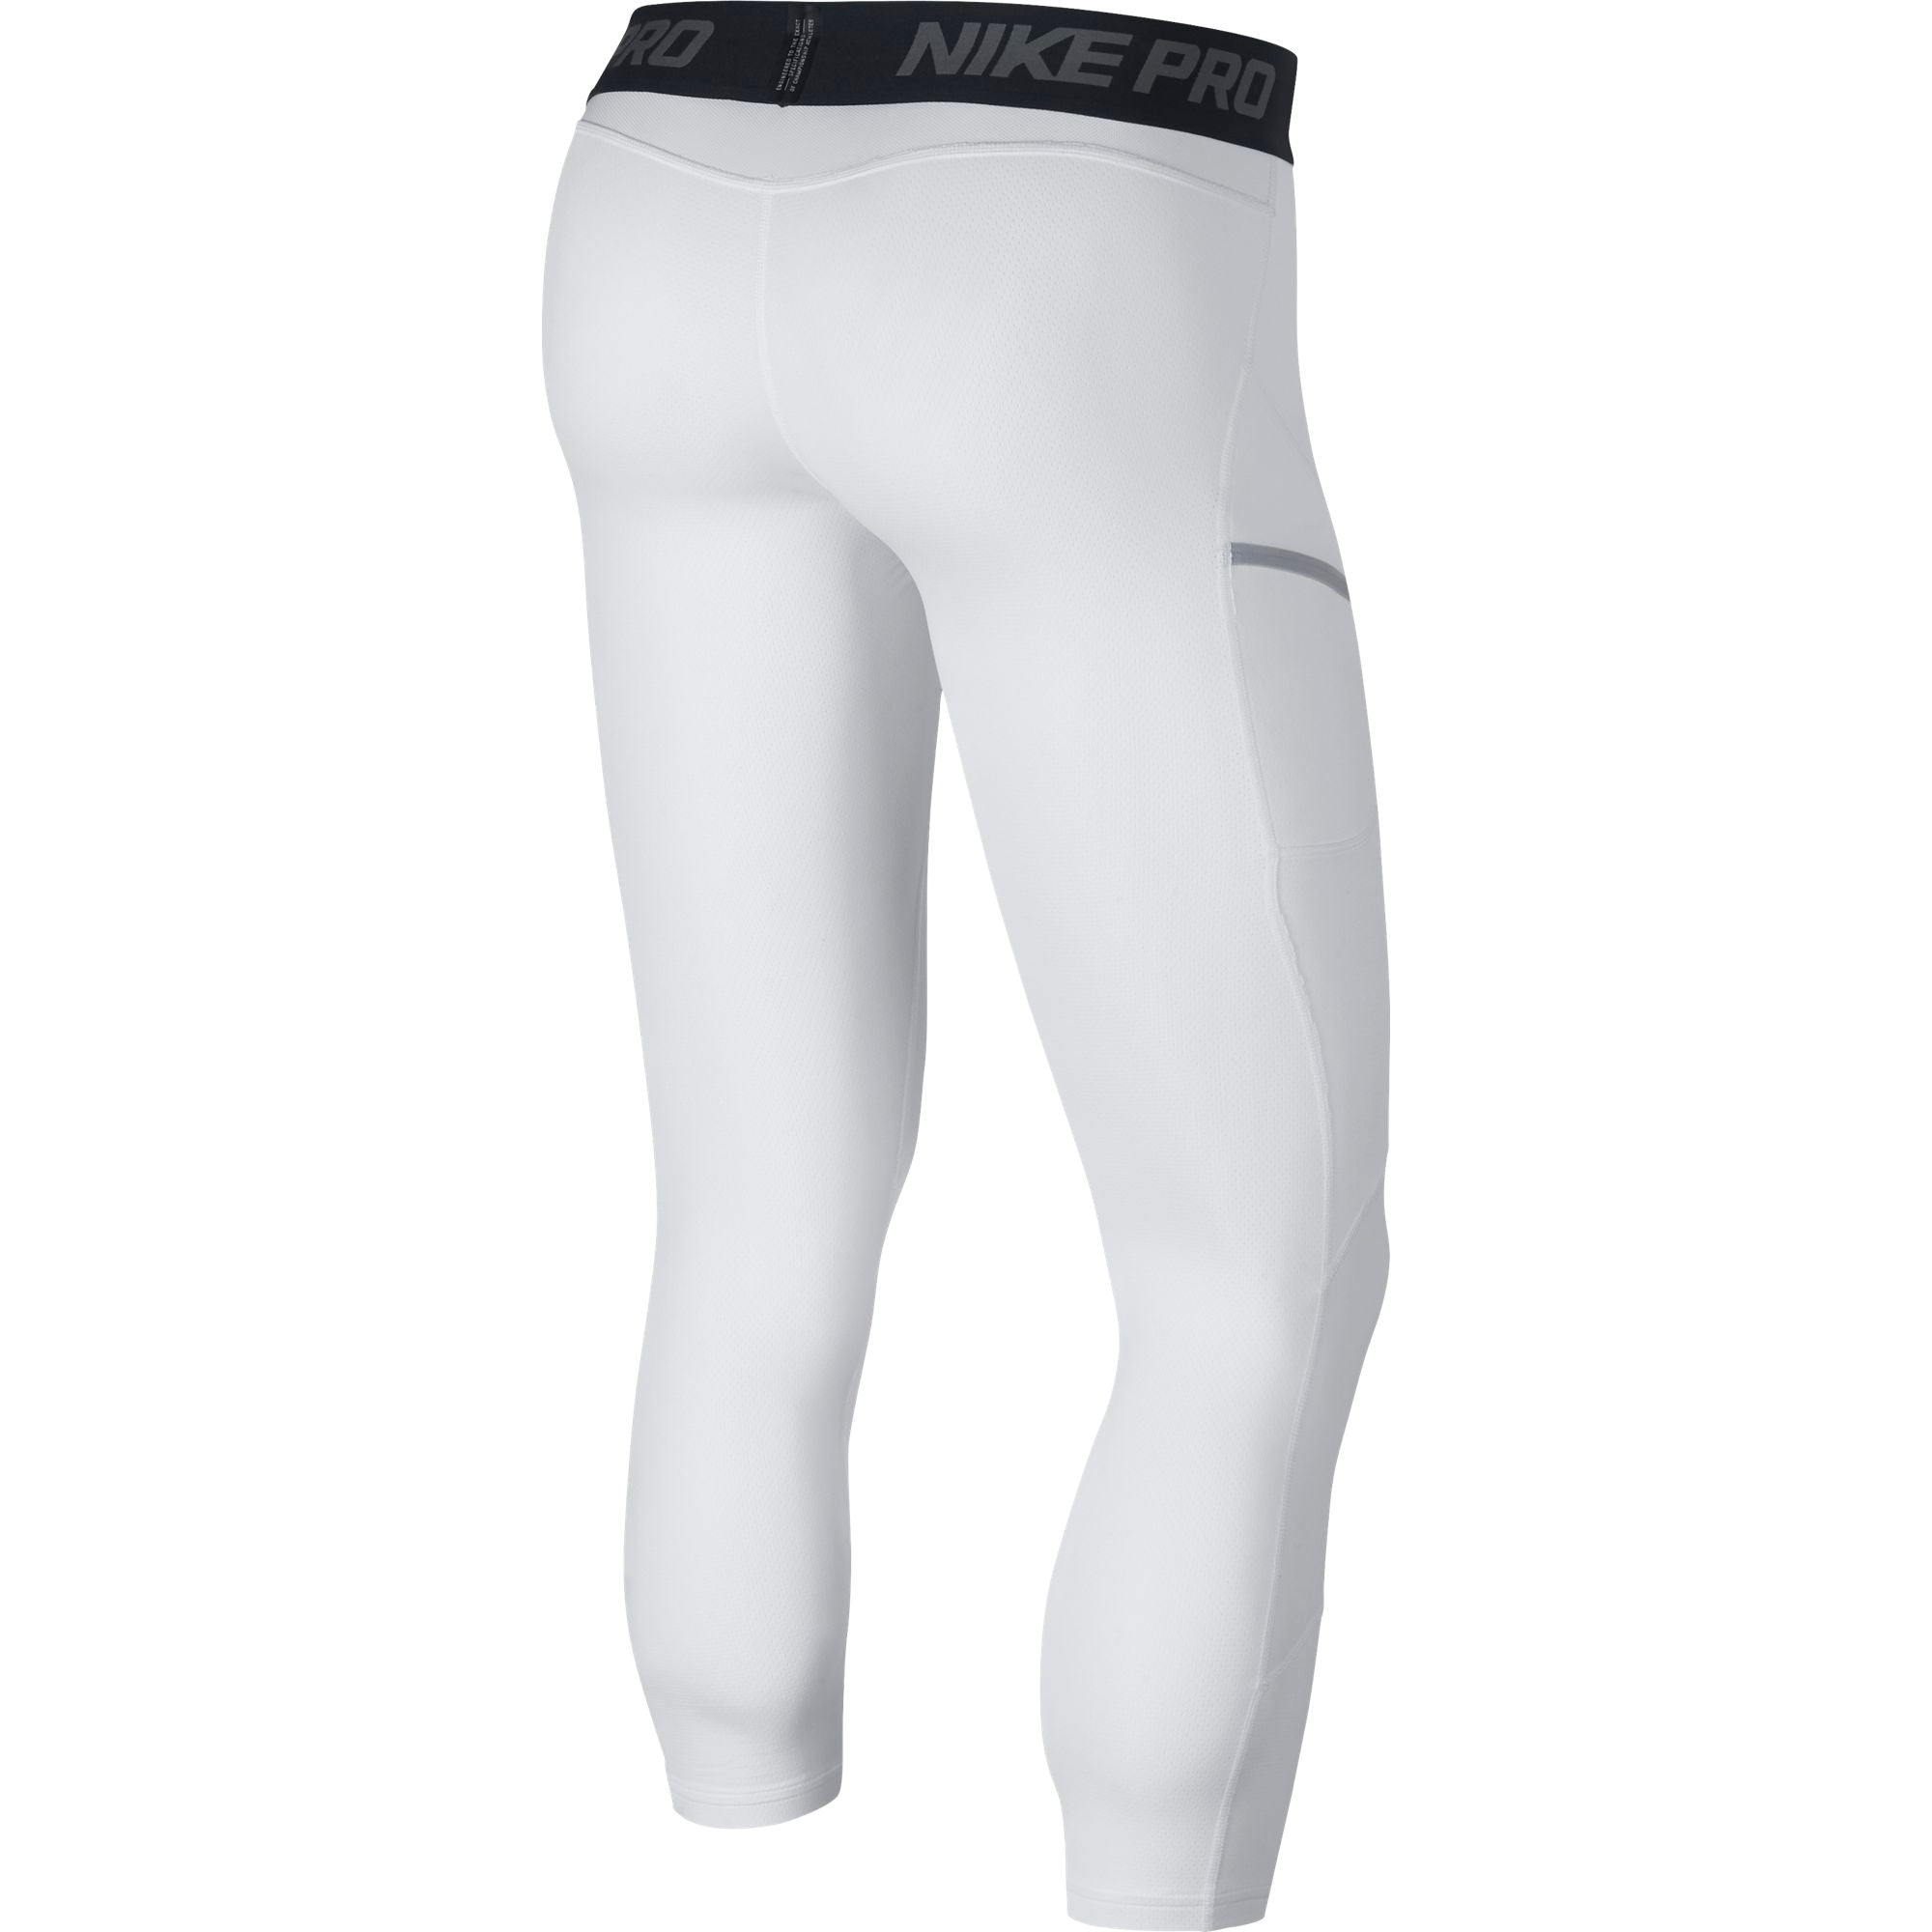 Nike Basketball Pro Tights - White/Black